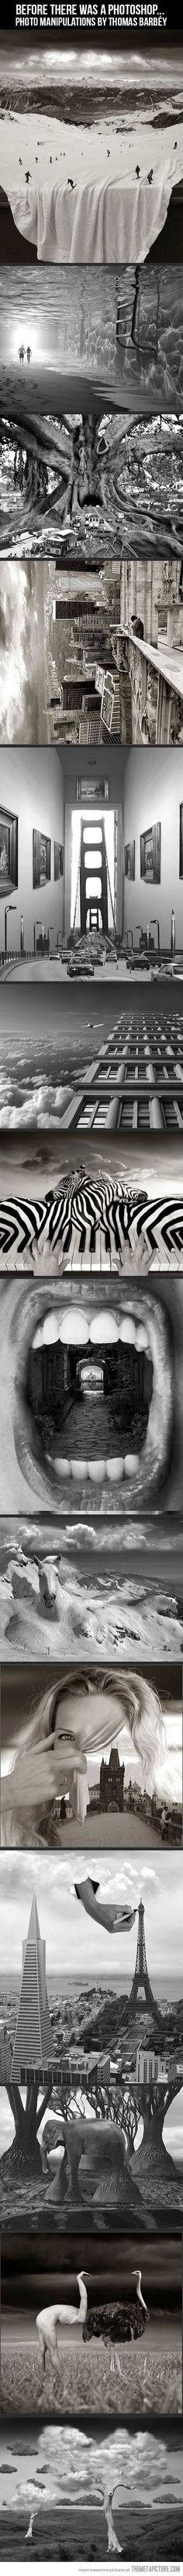 Photo manipulations by Thomas Barbey